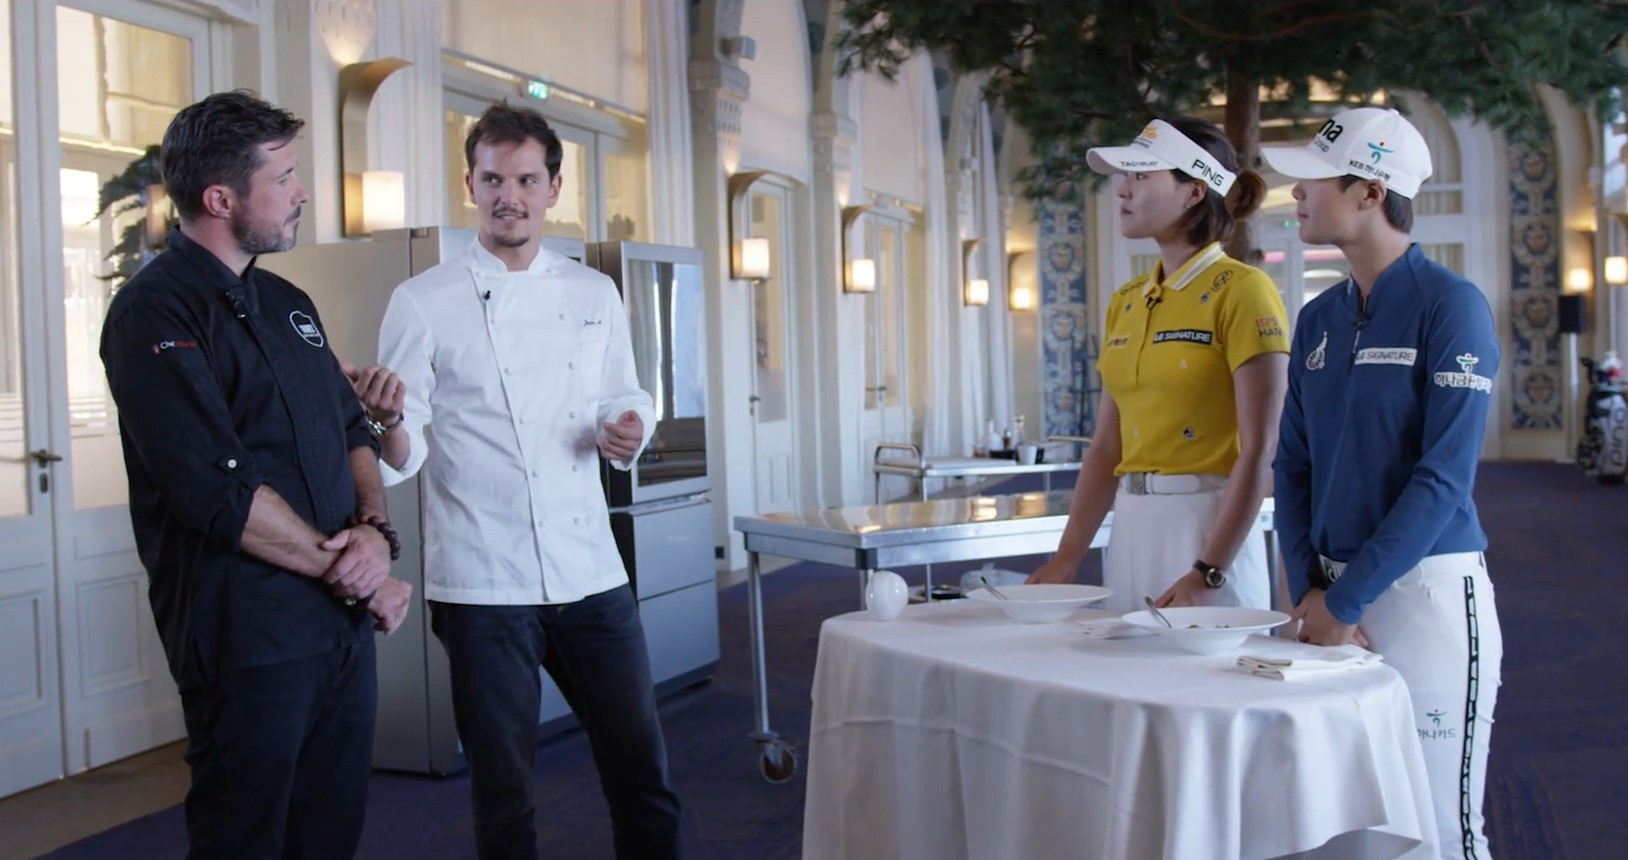 Two European star chefs – Juan Arbelaez and Christopher Crell, explain their signature cuisine to Korean golfers Park Sung-hyun and Chun In-gee who are competing at the 2018 Evian Championship.